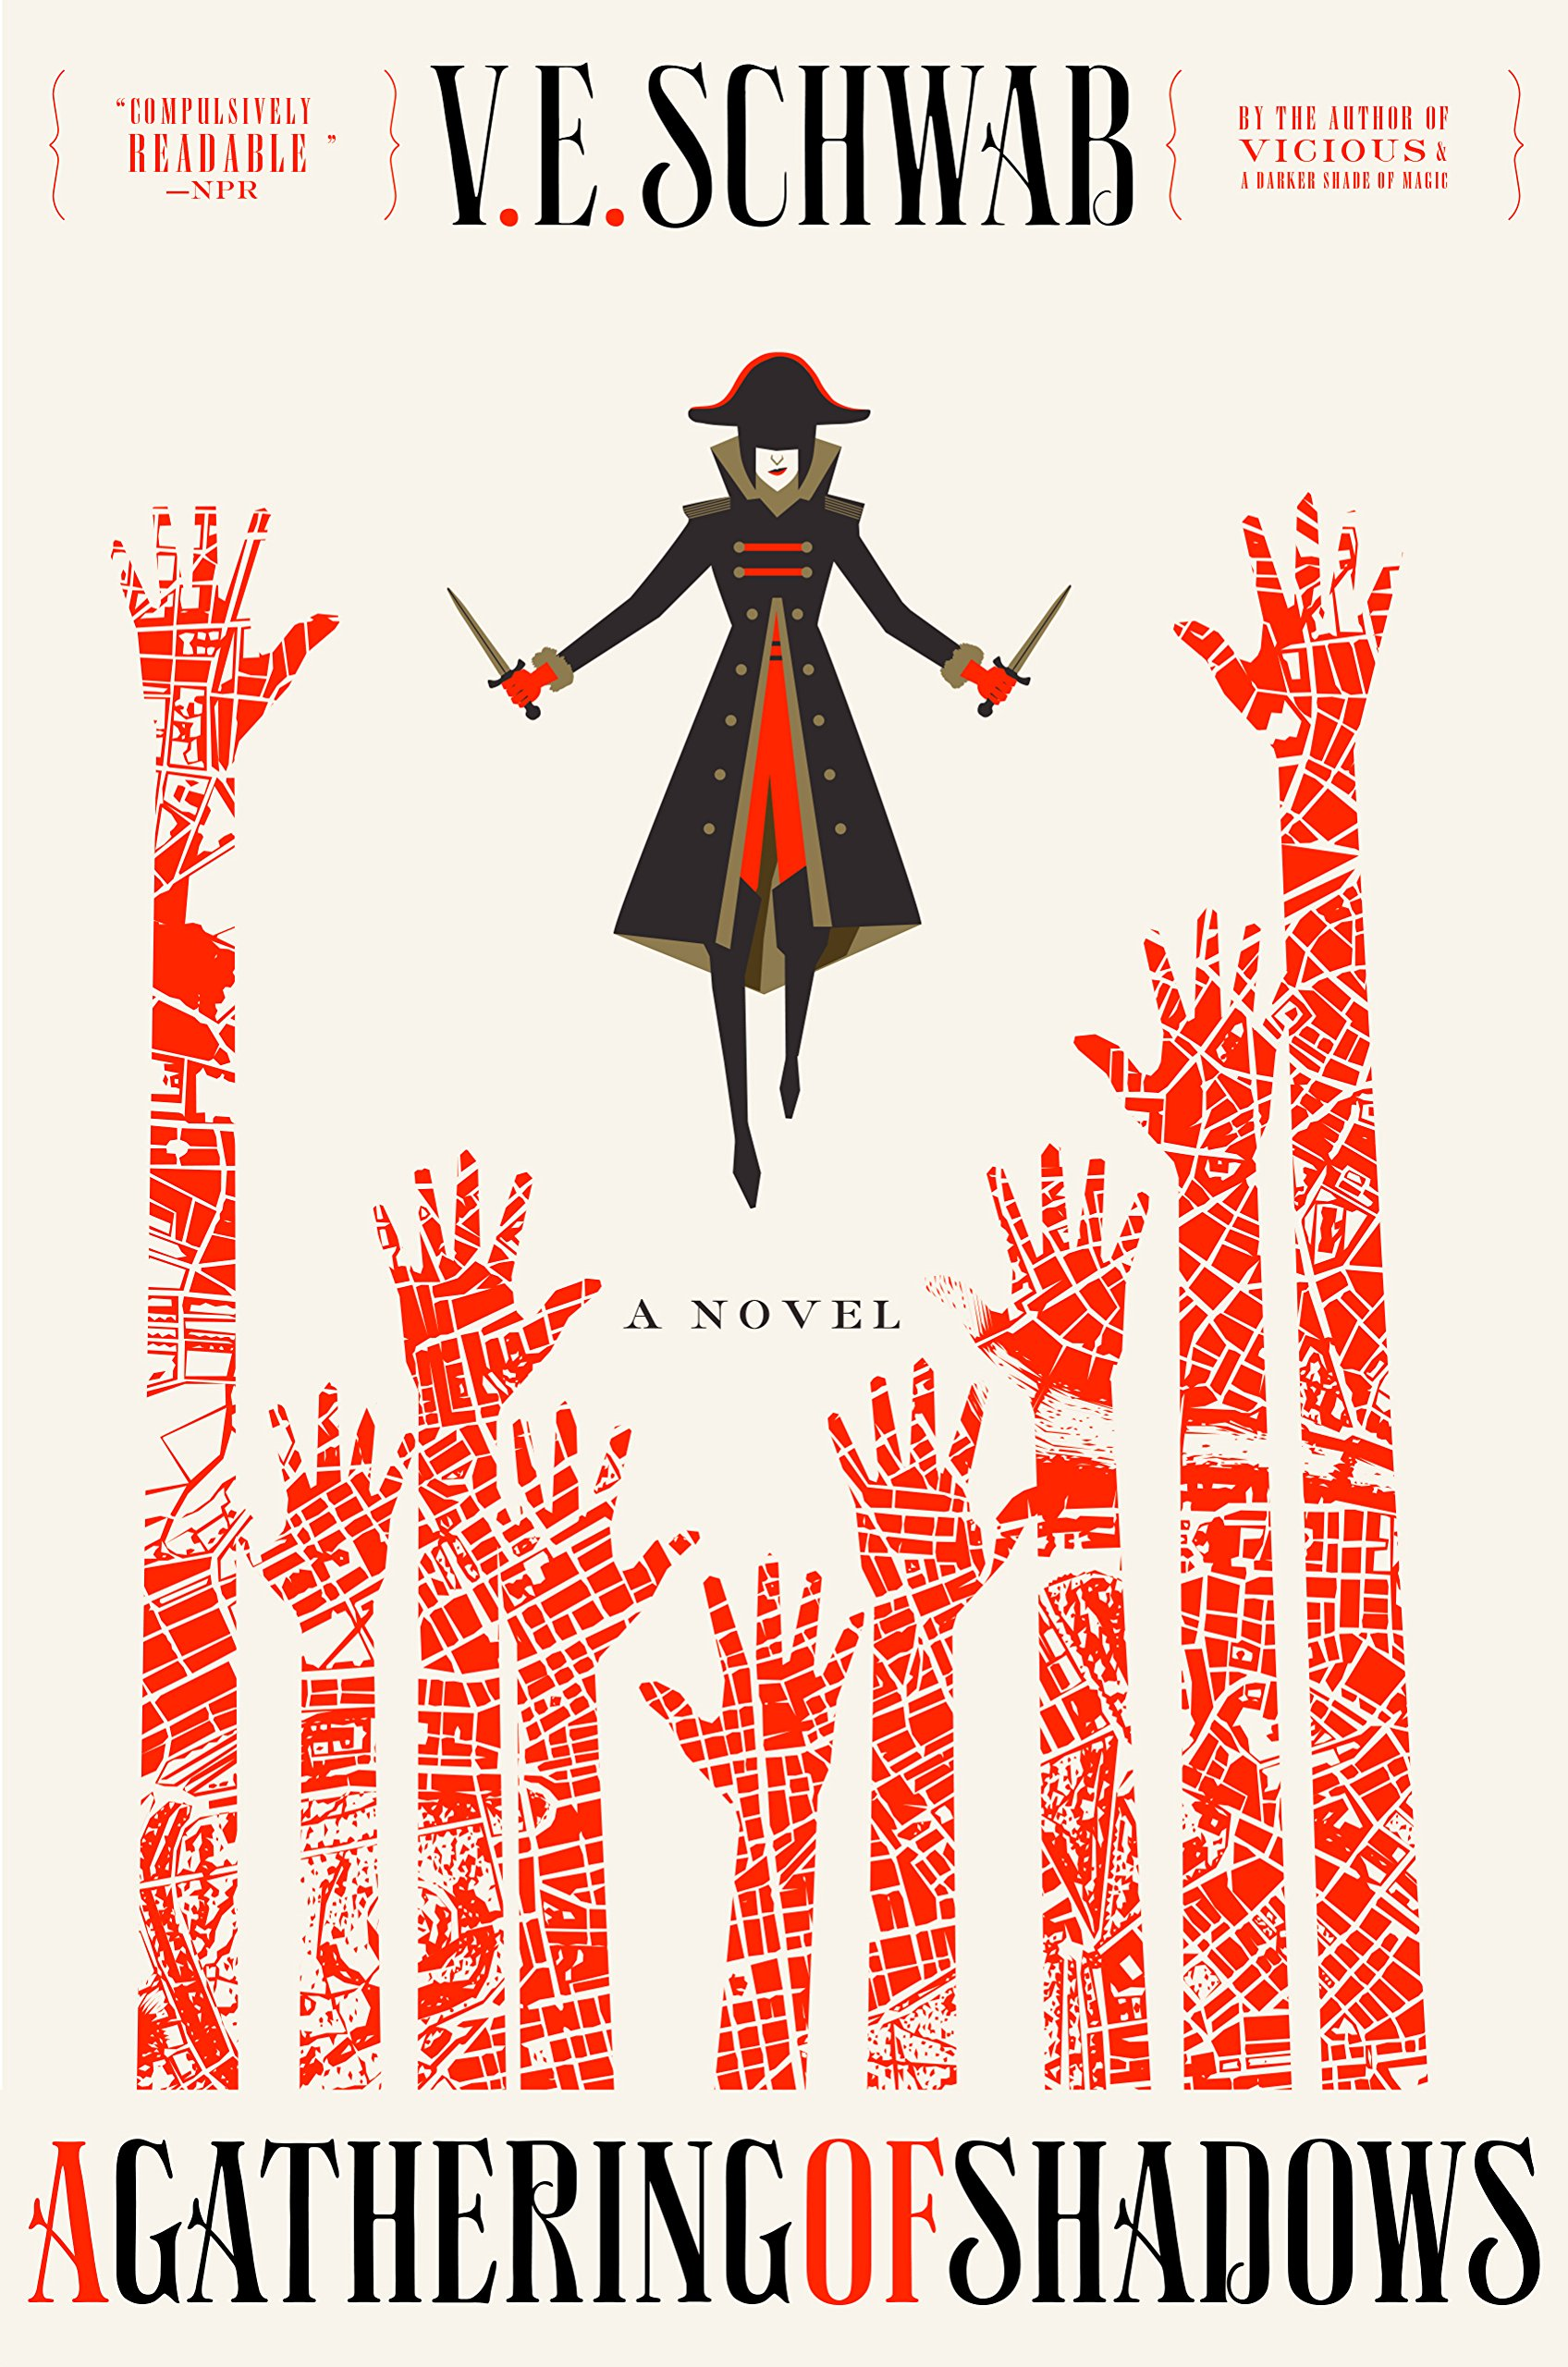 #8 Waiting on… A Gathering of Shadows by V.E. Schwab